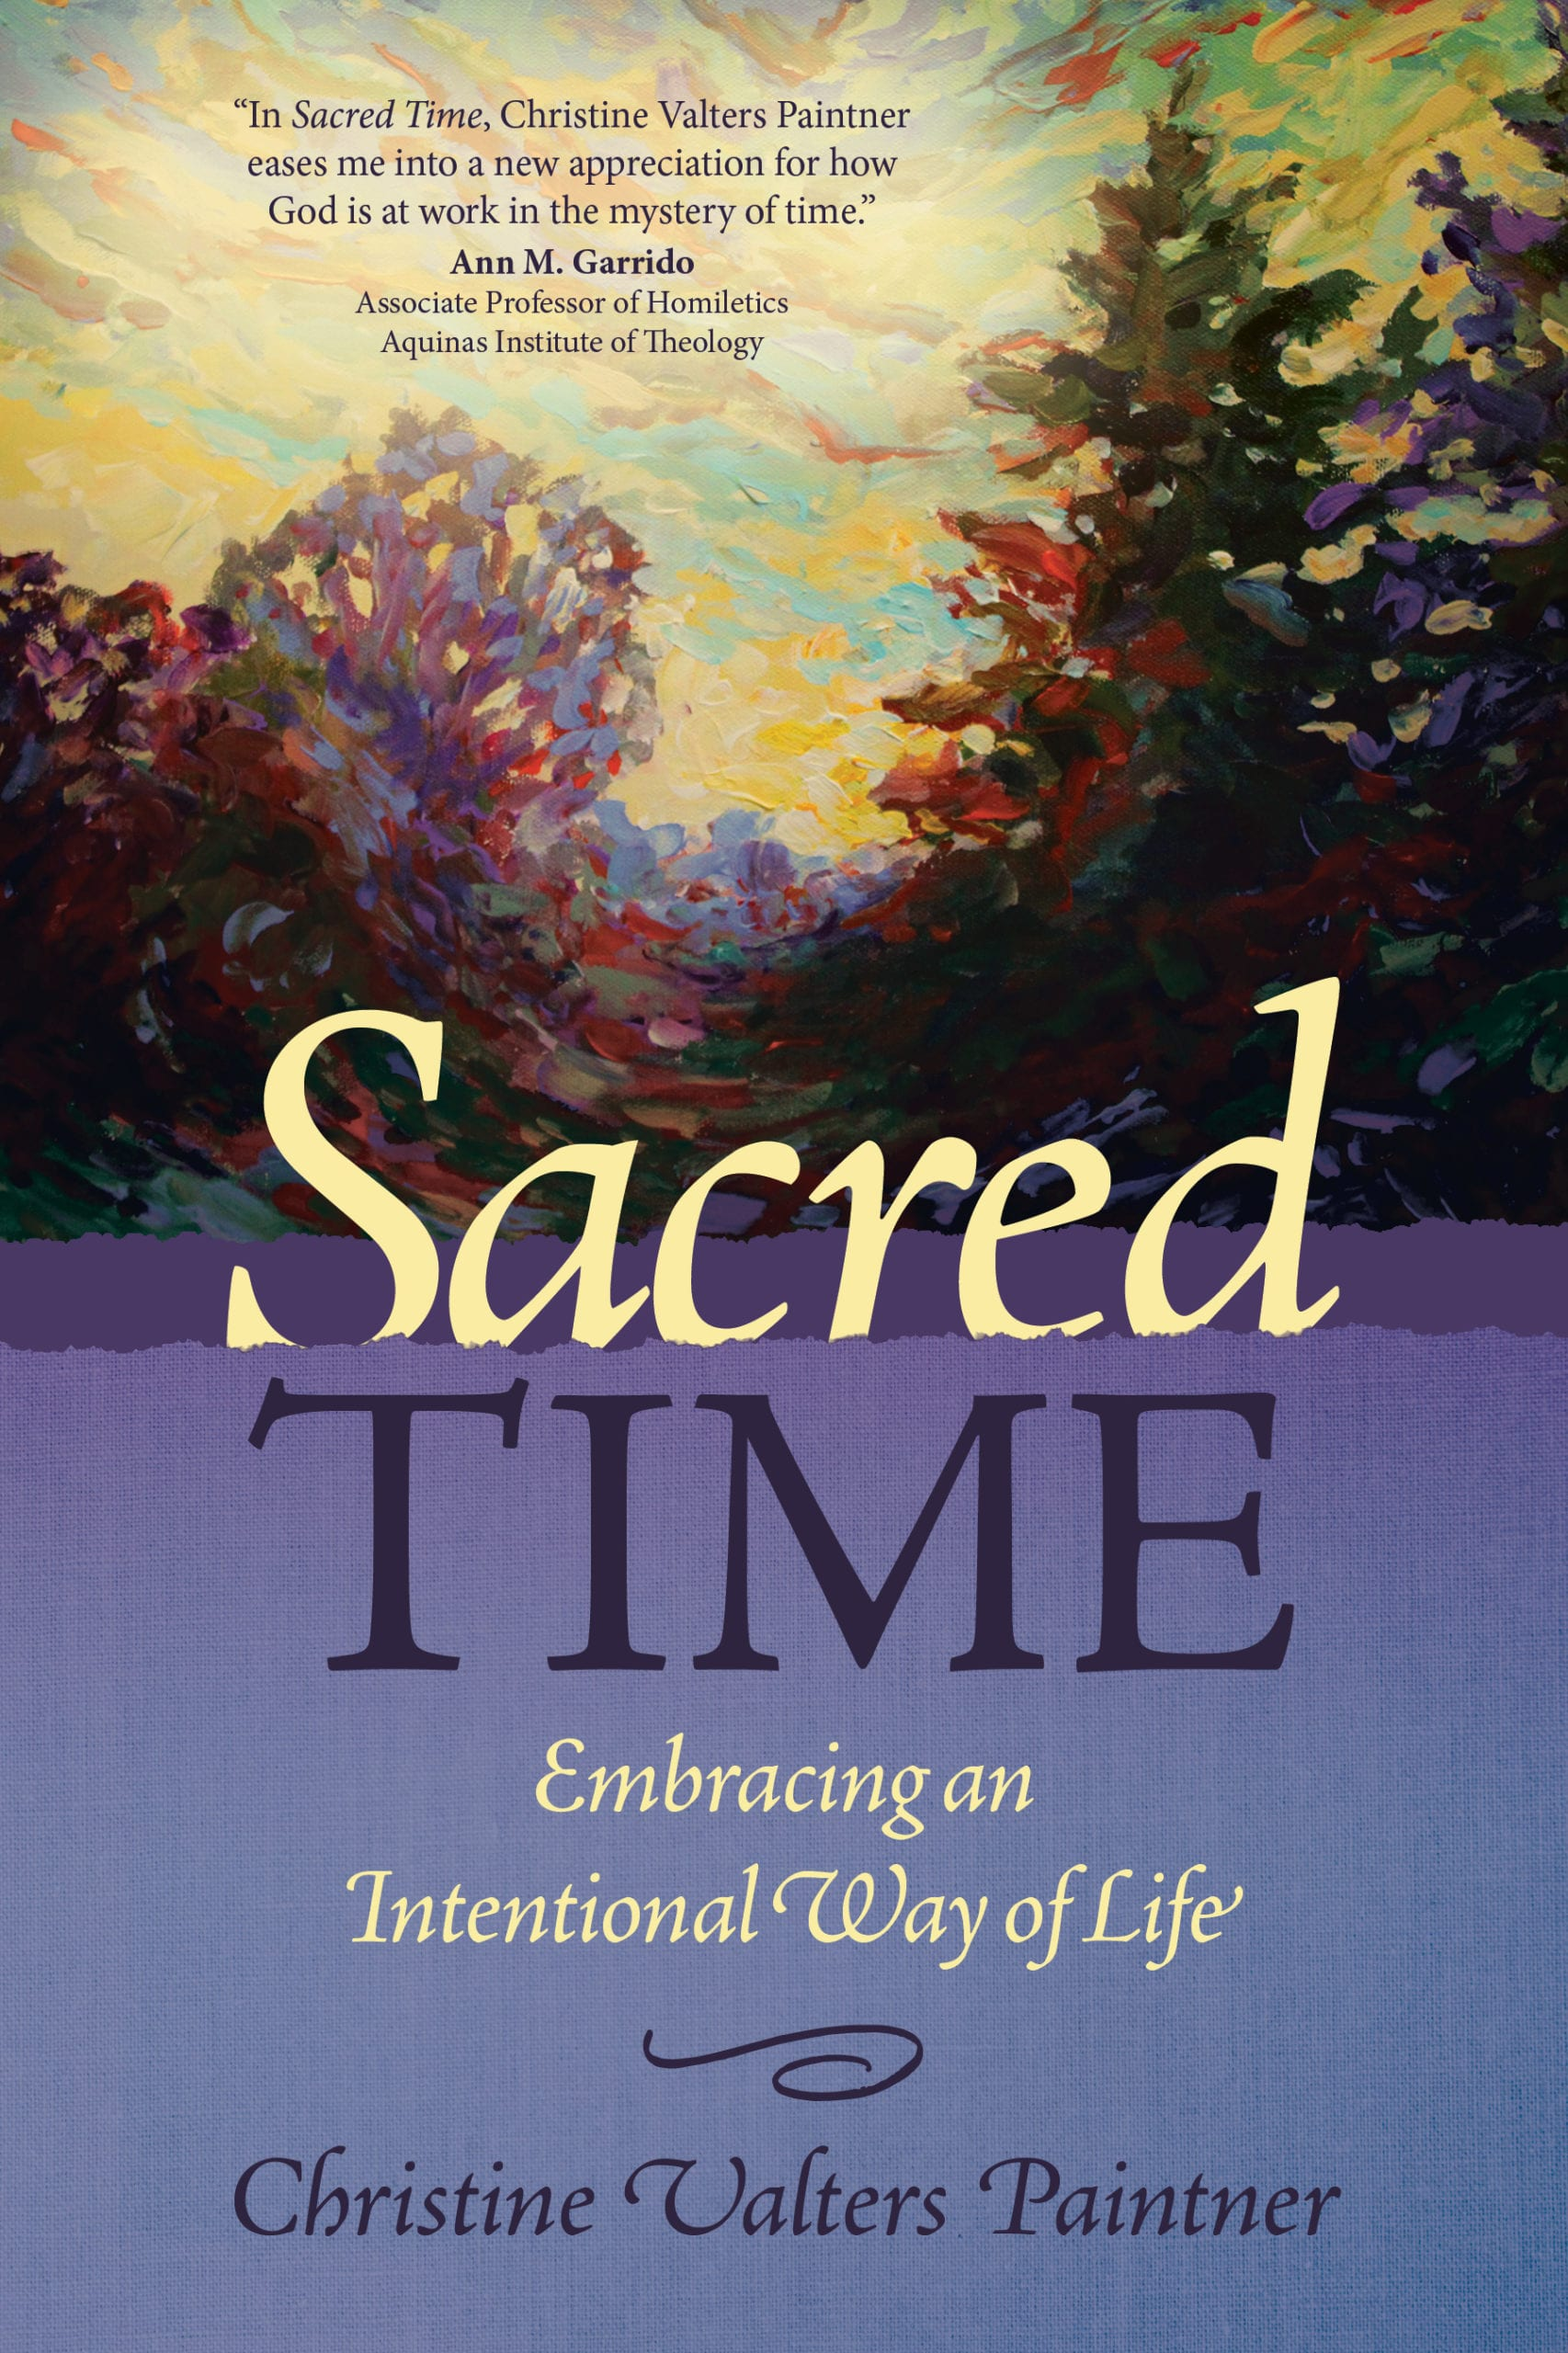 Sacred Time (new book coming from Christine) ~ A Love Note from Your Online Abbess